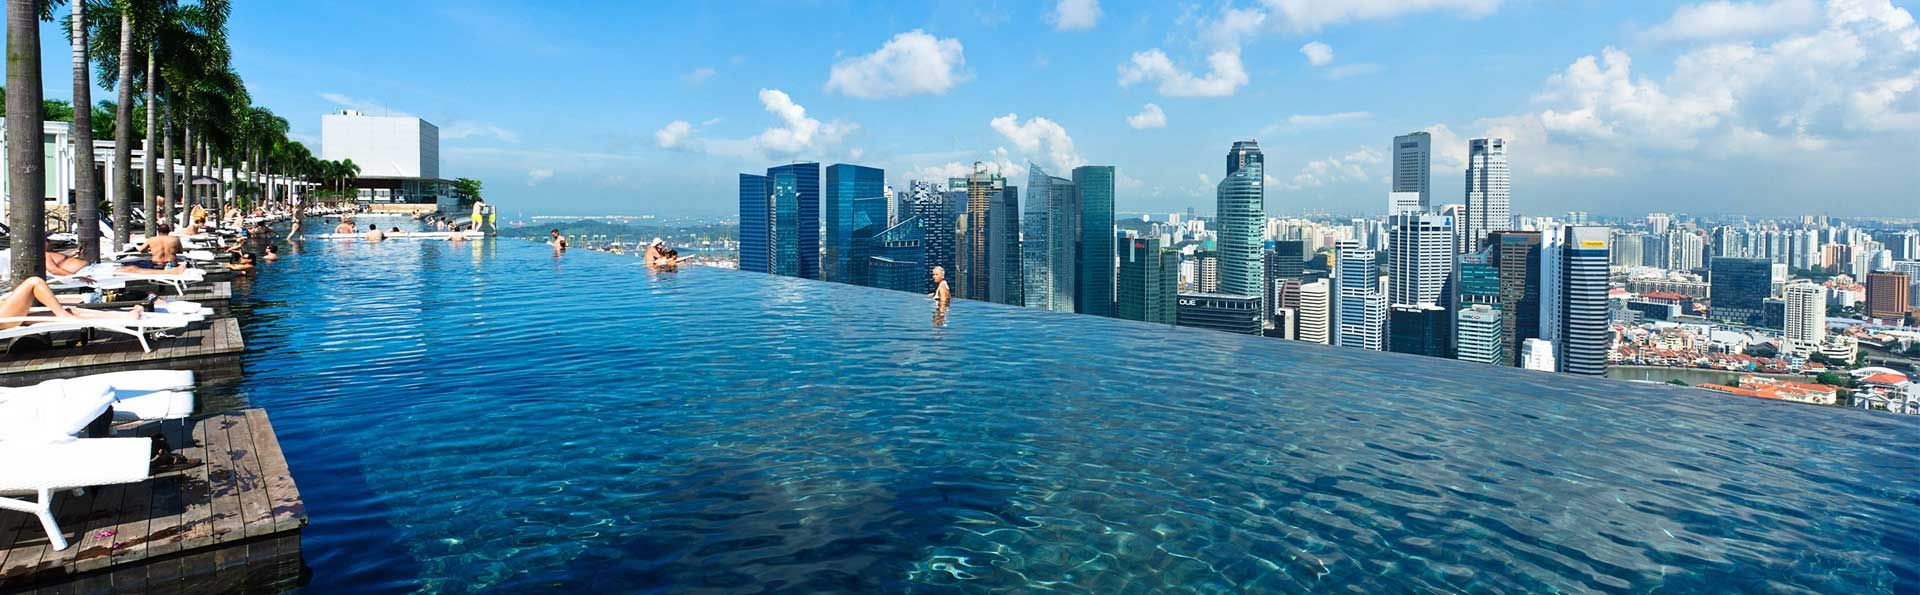 Marina bay sands hotel infinity pool with view of singapore city outlet landscapes peisaje - Marina bay sands resort singapore swimming pool ...